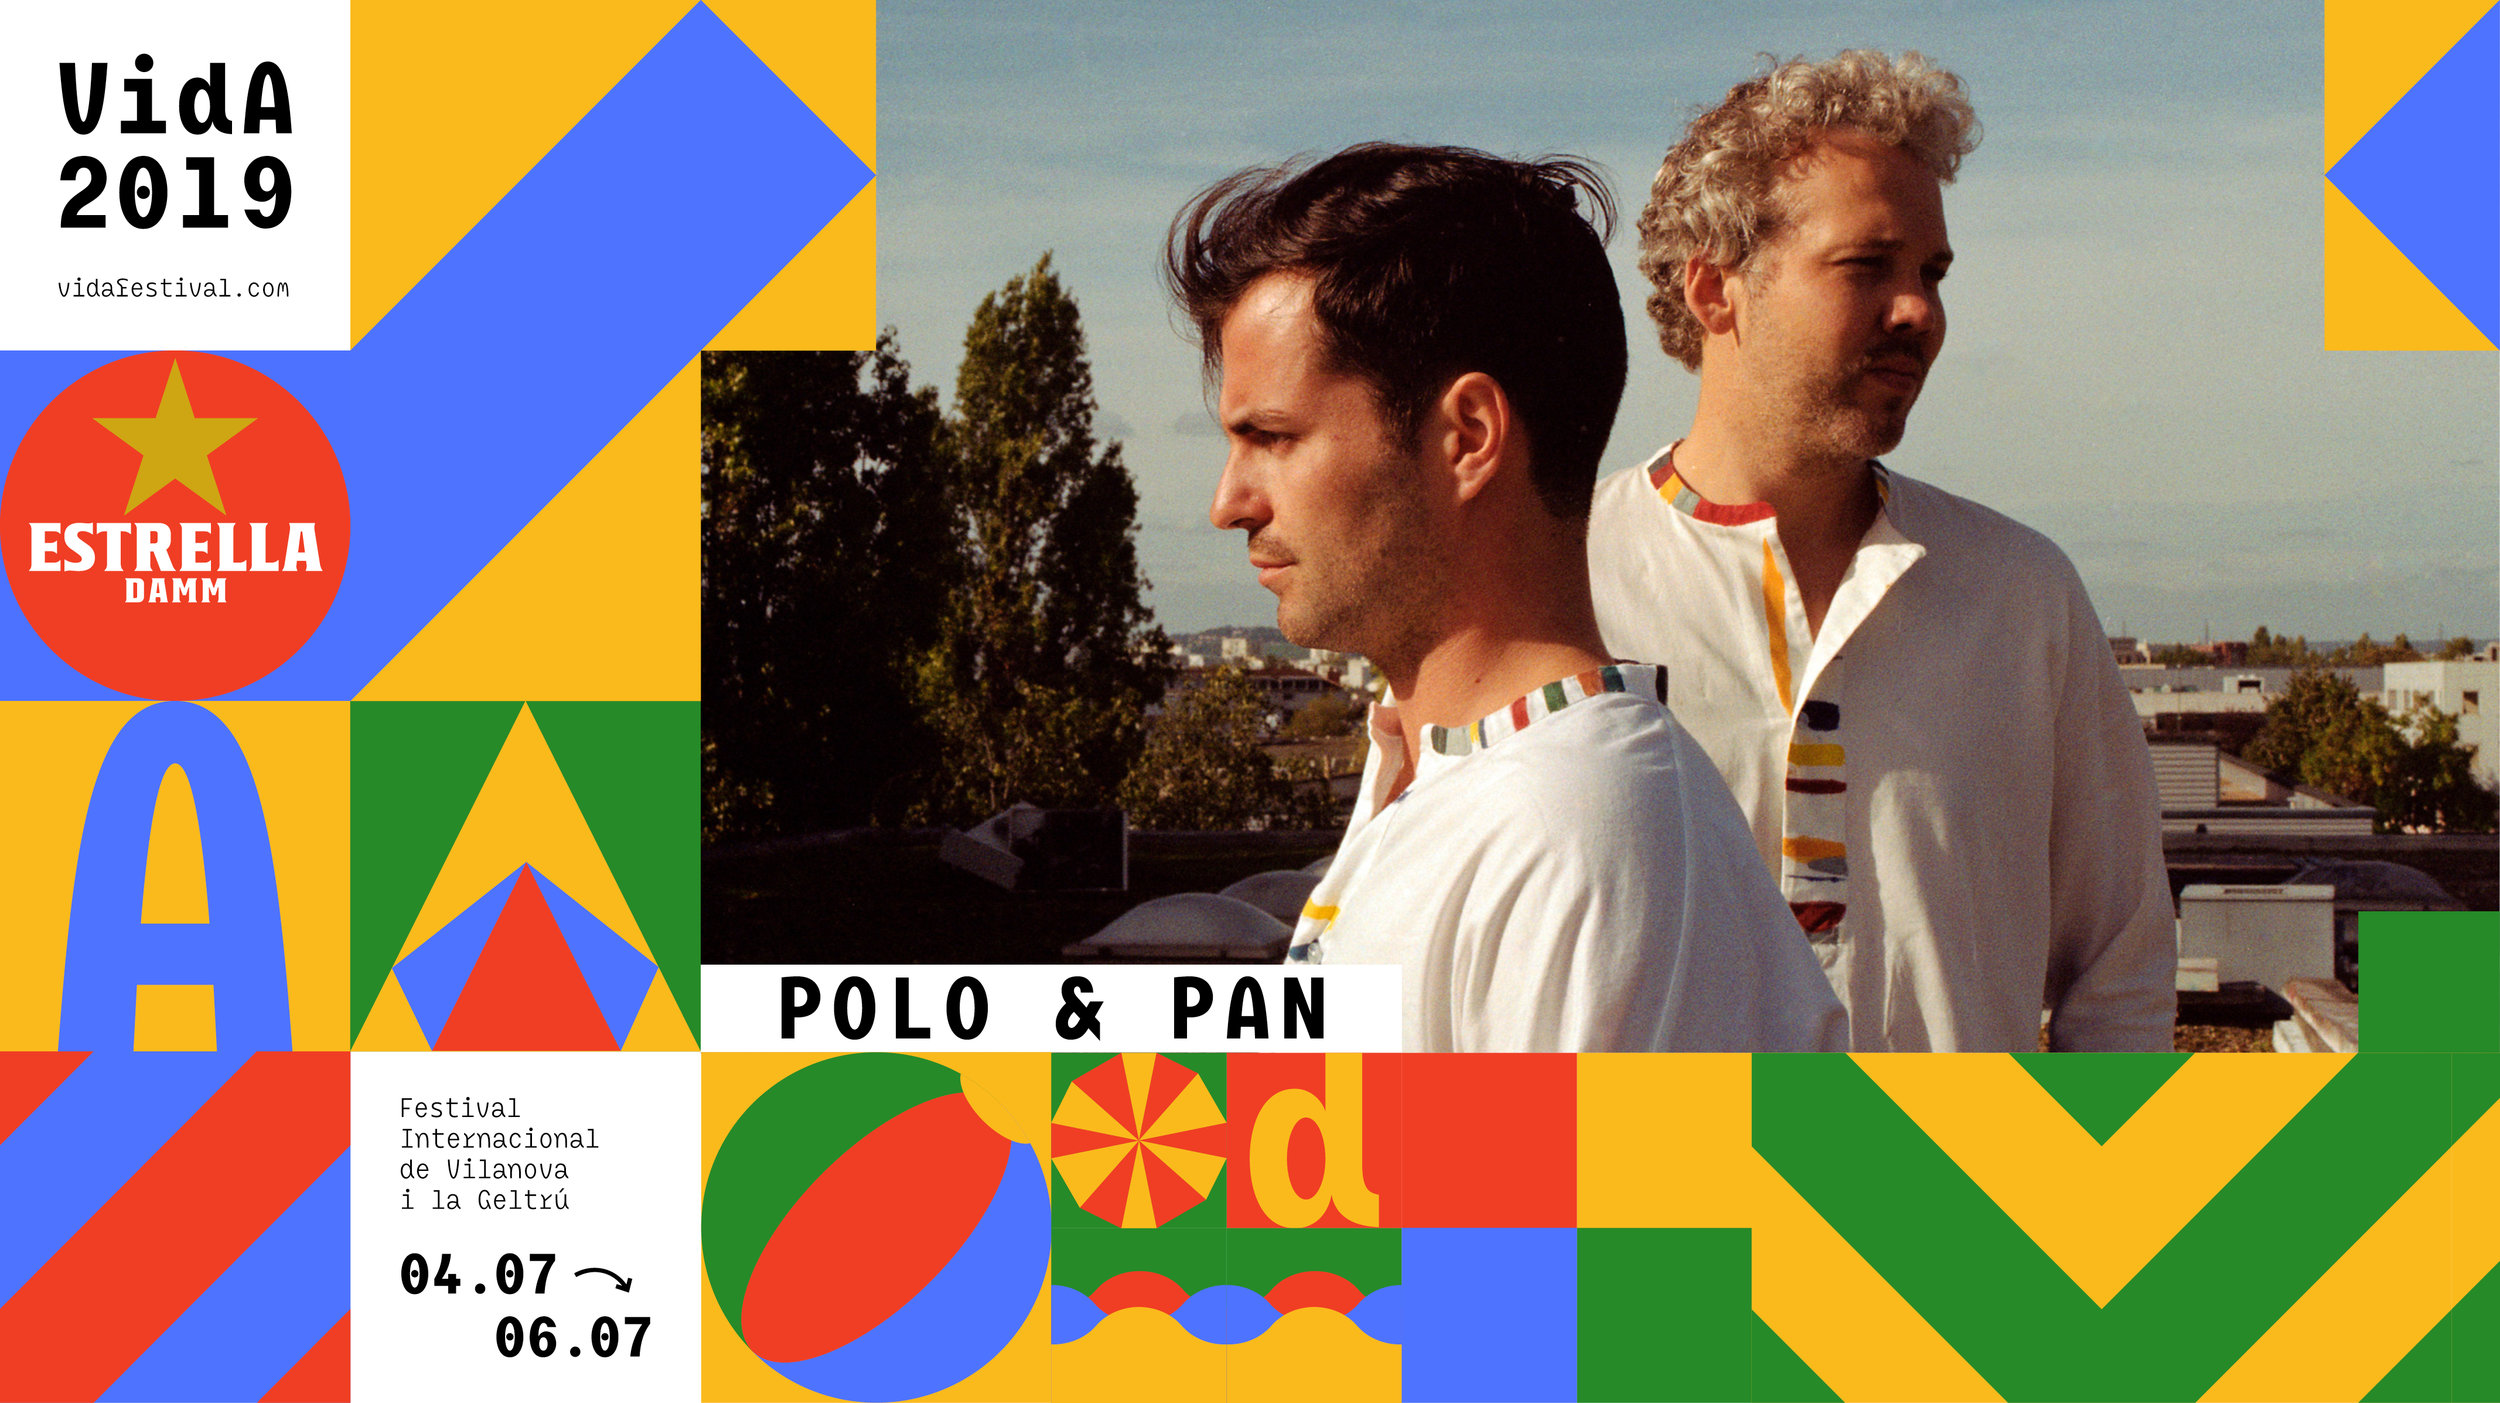 Polo & Pan web.jpg